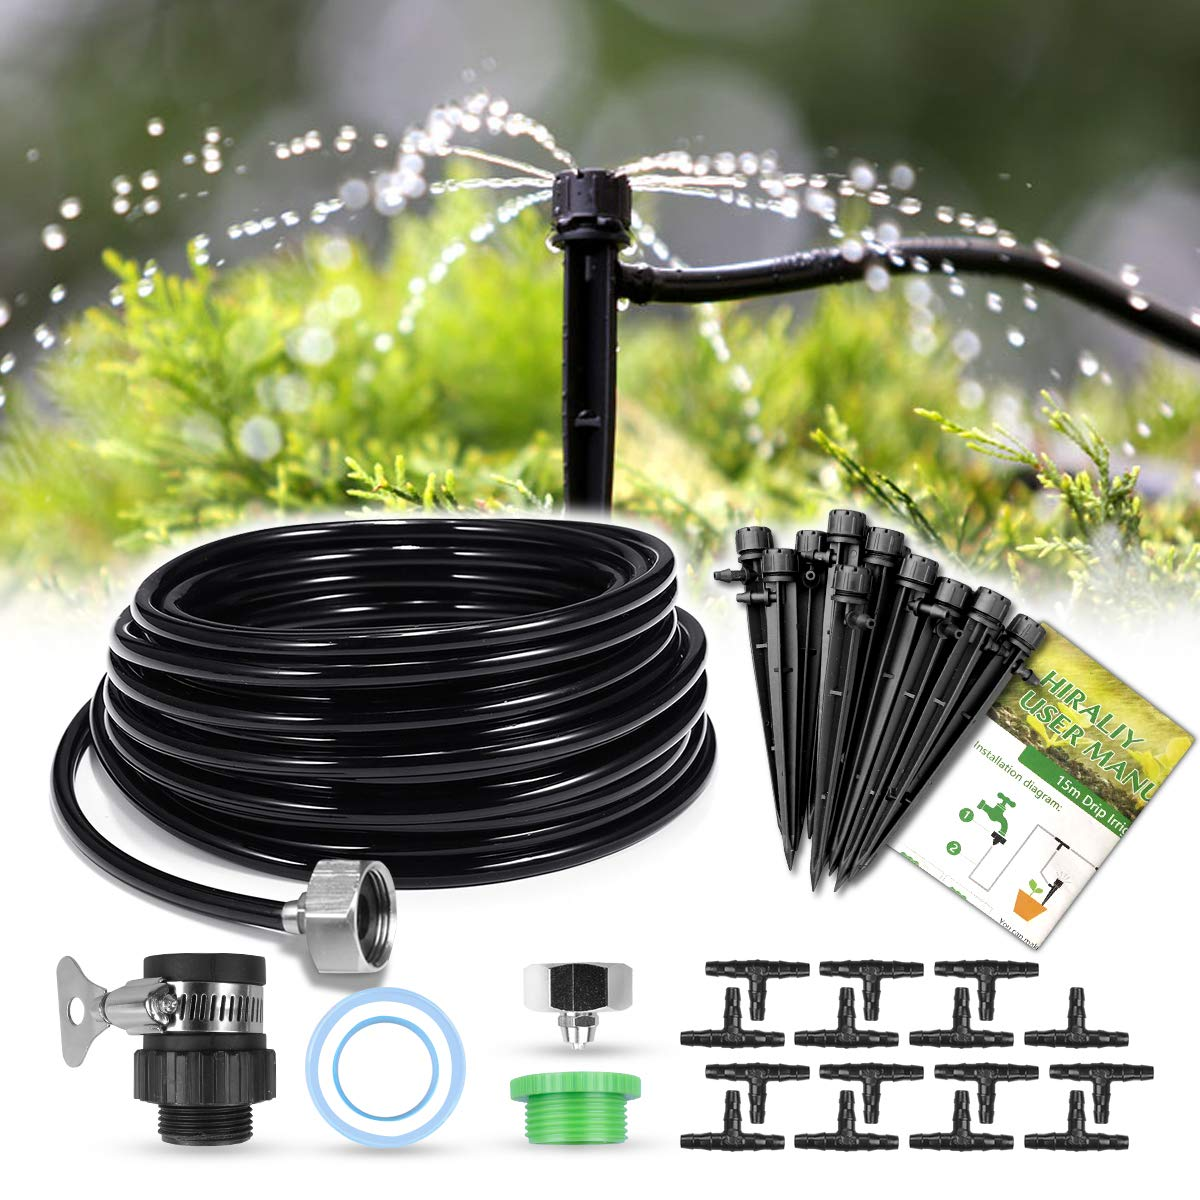 "HIRALIY 50ft /15M Drip Irrigation Kits 1/4"" Blank Distribution Tubing Plant Watering System DIY Saving Water Automatic Irrigation Equipment Set for Patio Lawn Garden Greenhouse Flower Bed"